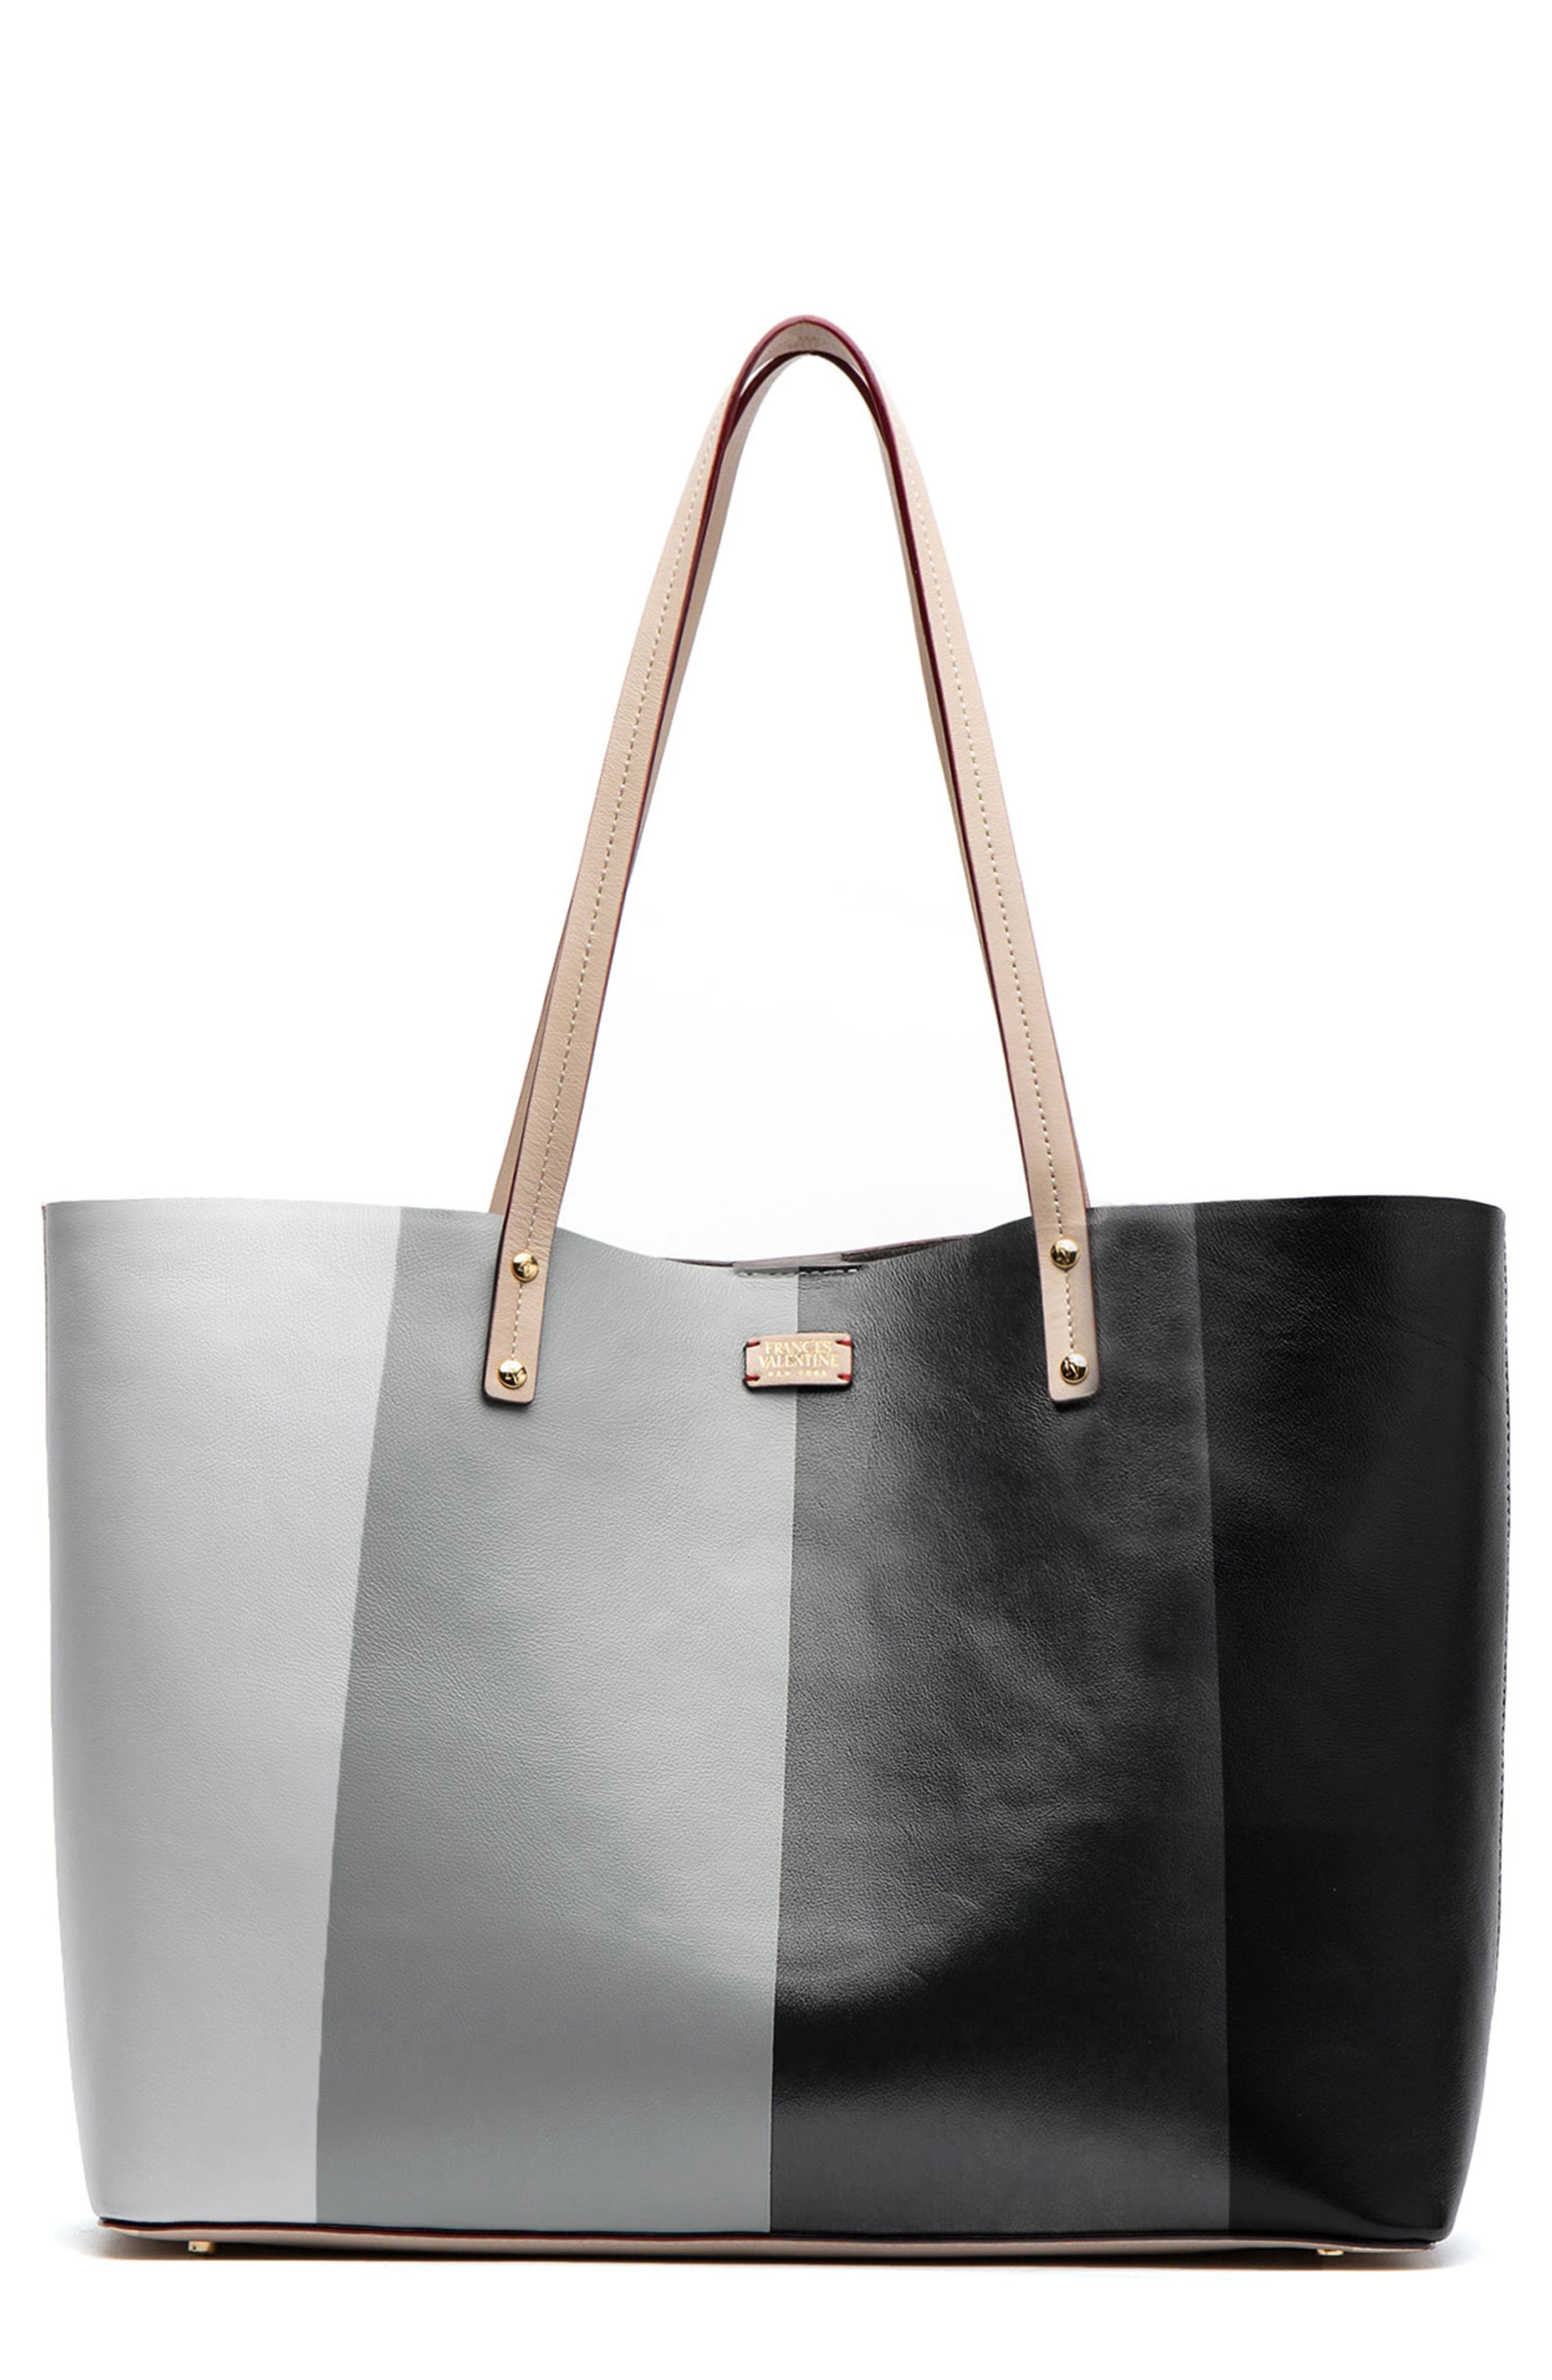 FRANCES VALENTINE Trixie Leather Tote in Gradient Grey